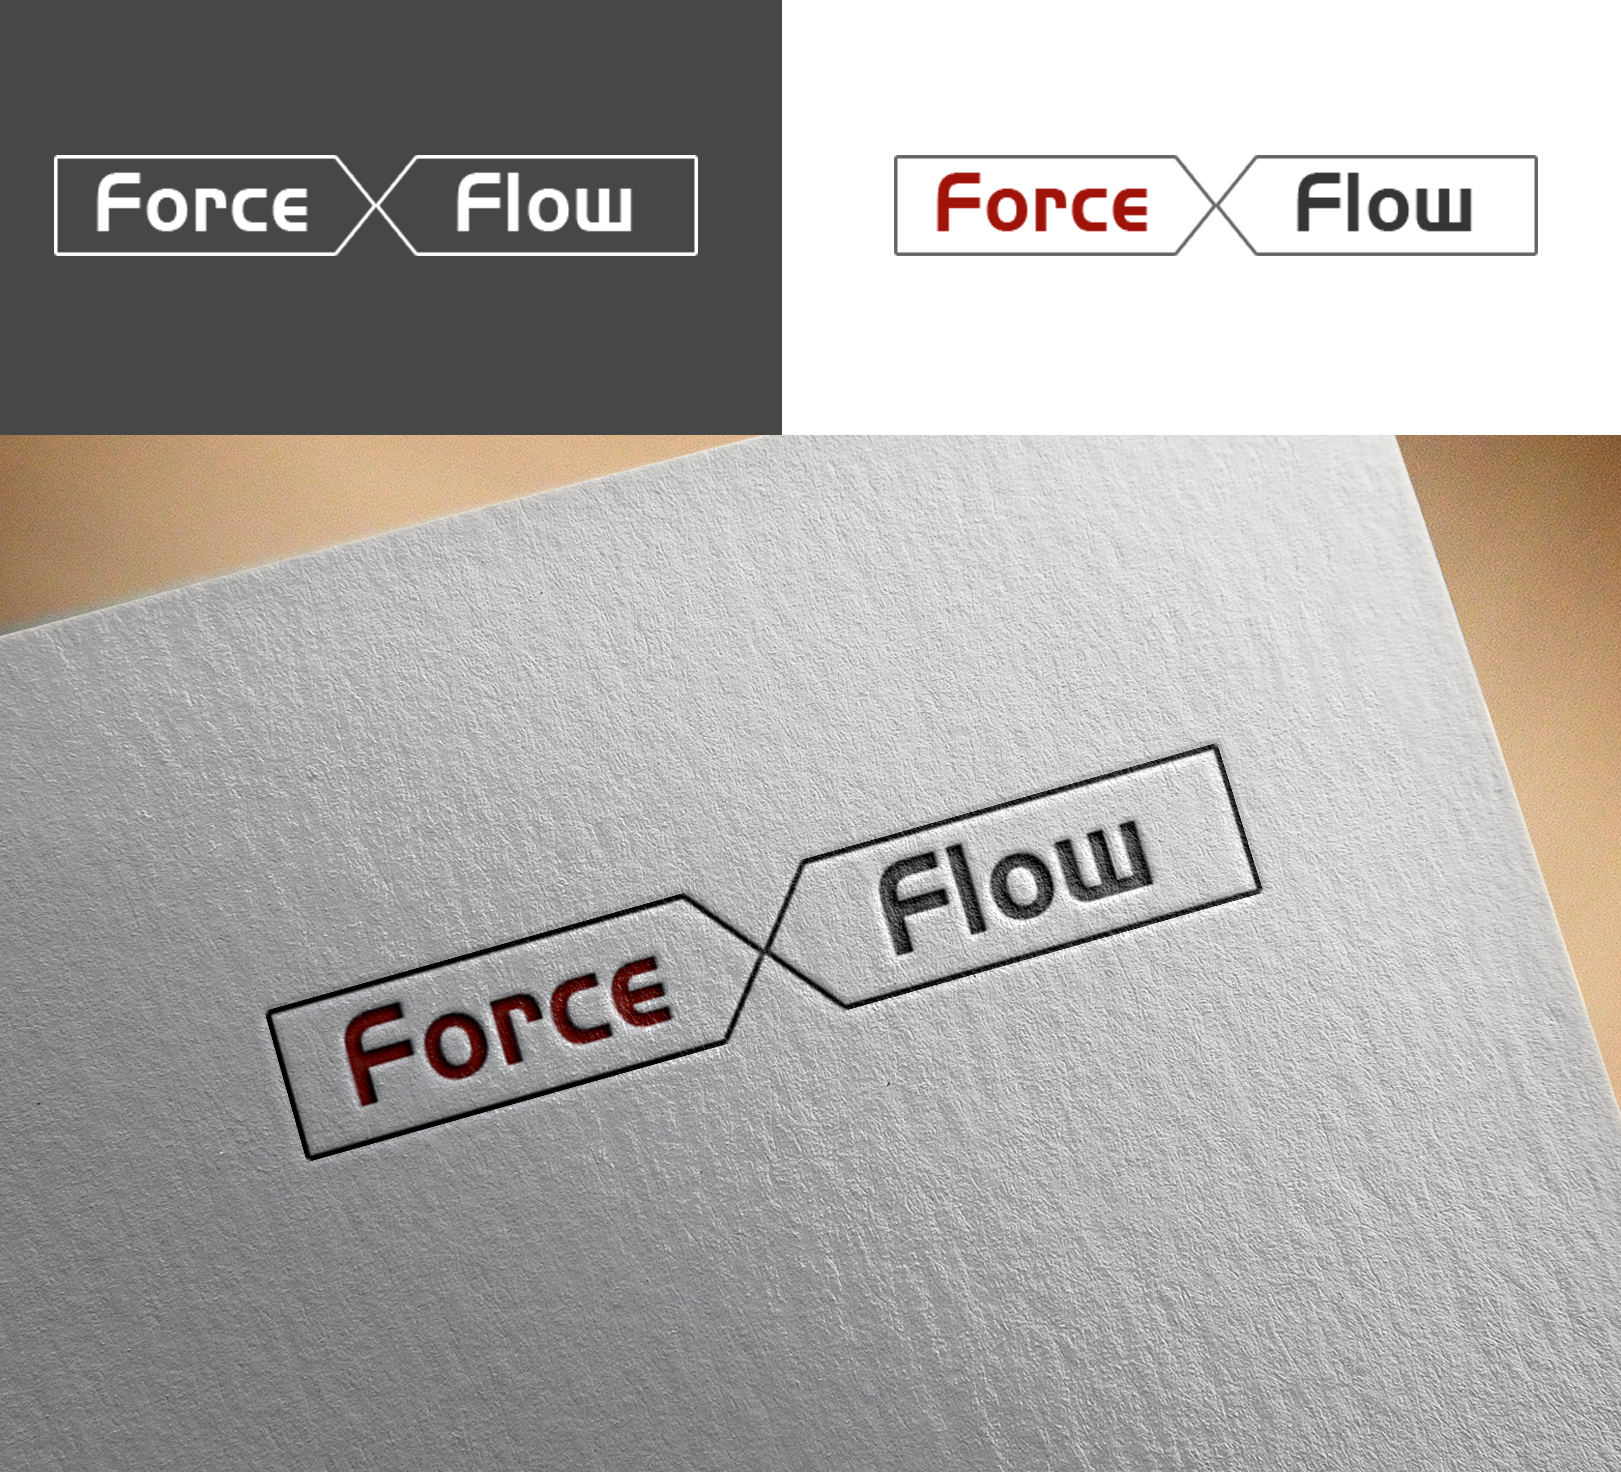 Logo Design by Sohaib Ali Khan - Entry No. 94 in the Logo Design Contest Fun Logo Design for Flow Force Injectors.